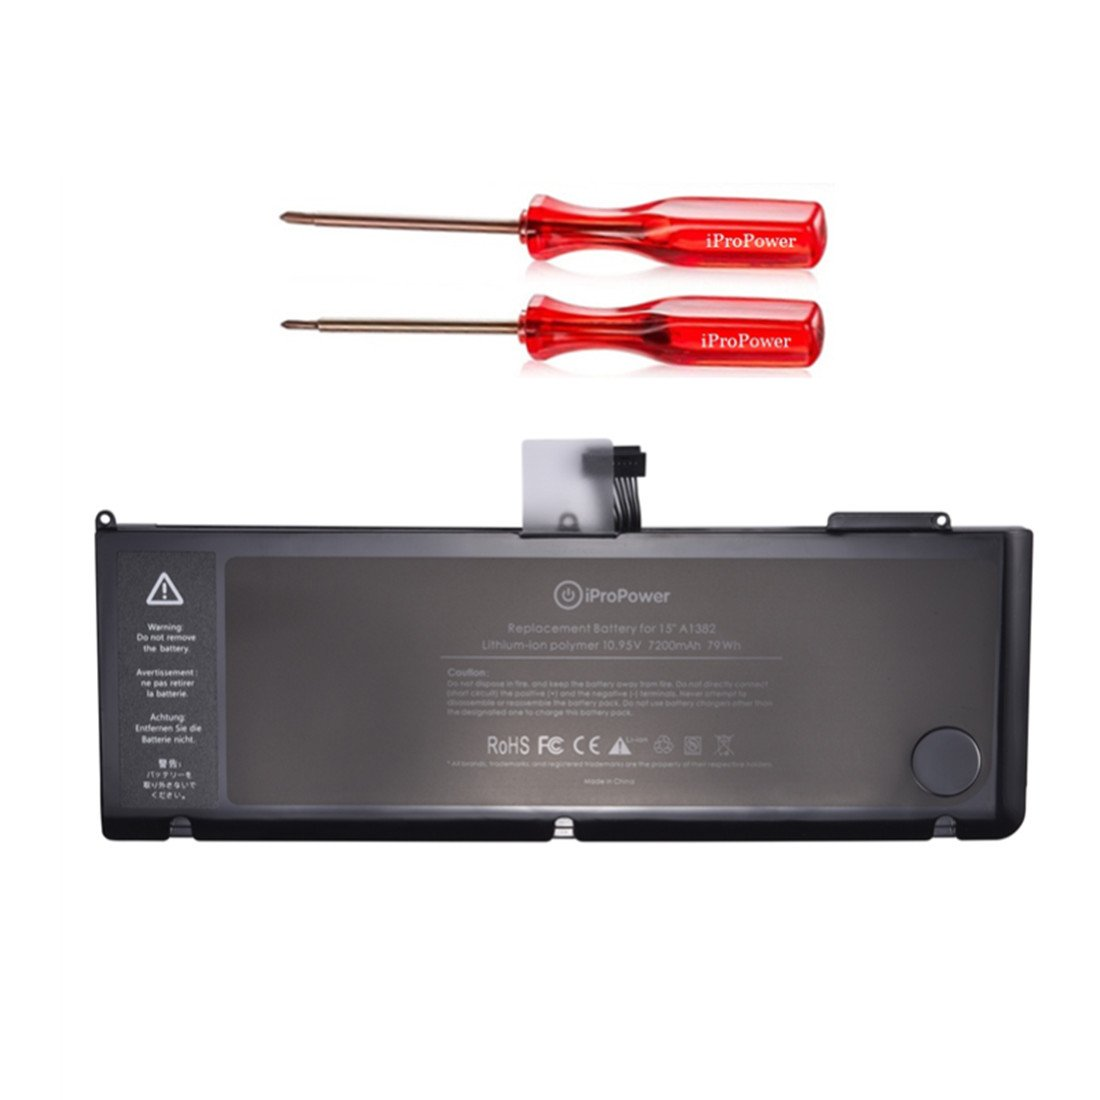 Bateria A1382 para MacBook Pro A1286 15 inch Solo para Early 2011 Late 2011 Mid 2012 Version 7200mAh 10.95V/77.5Wh